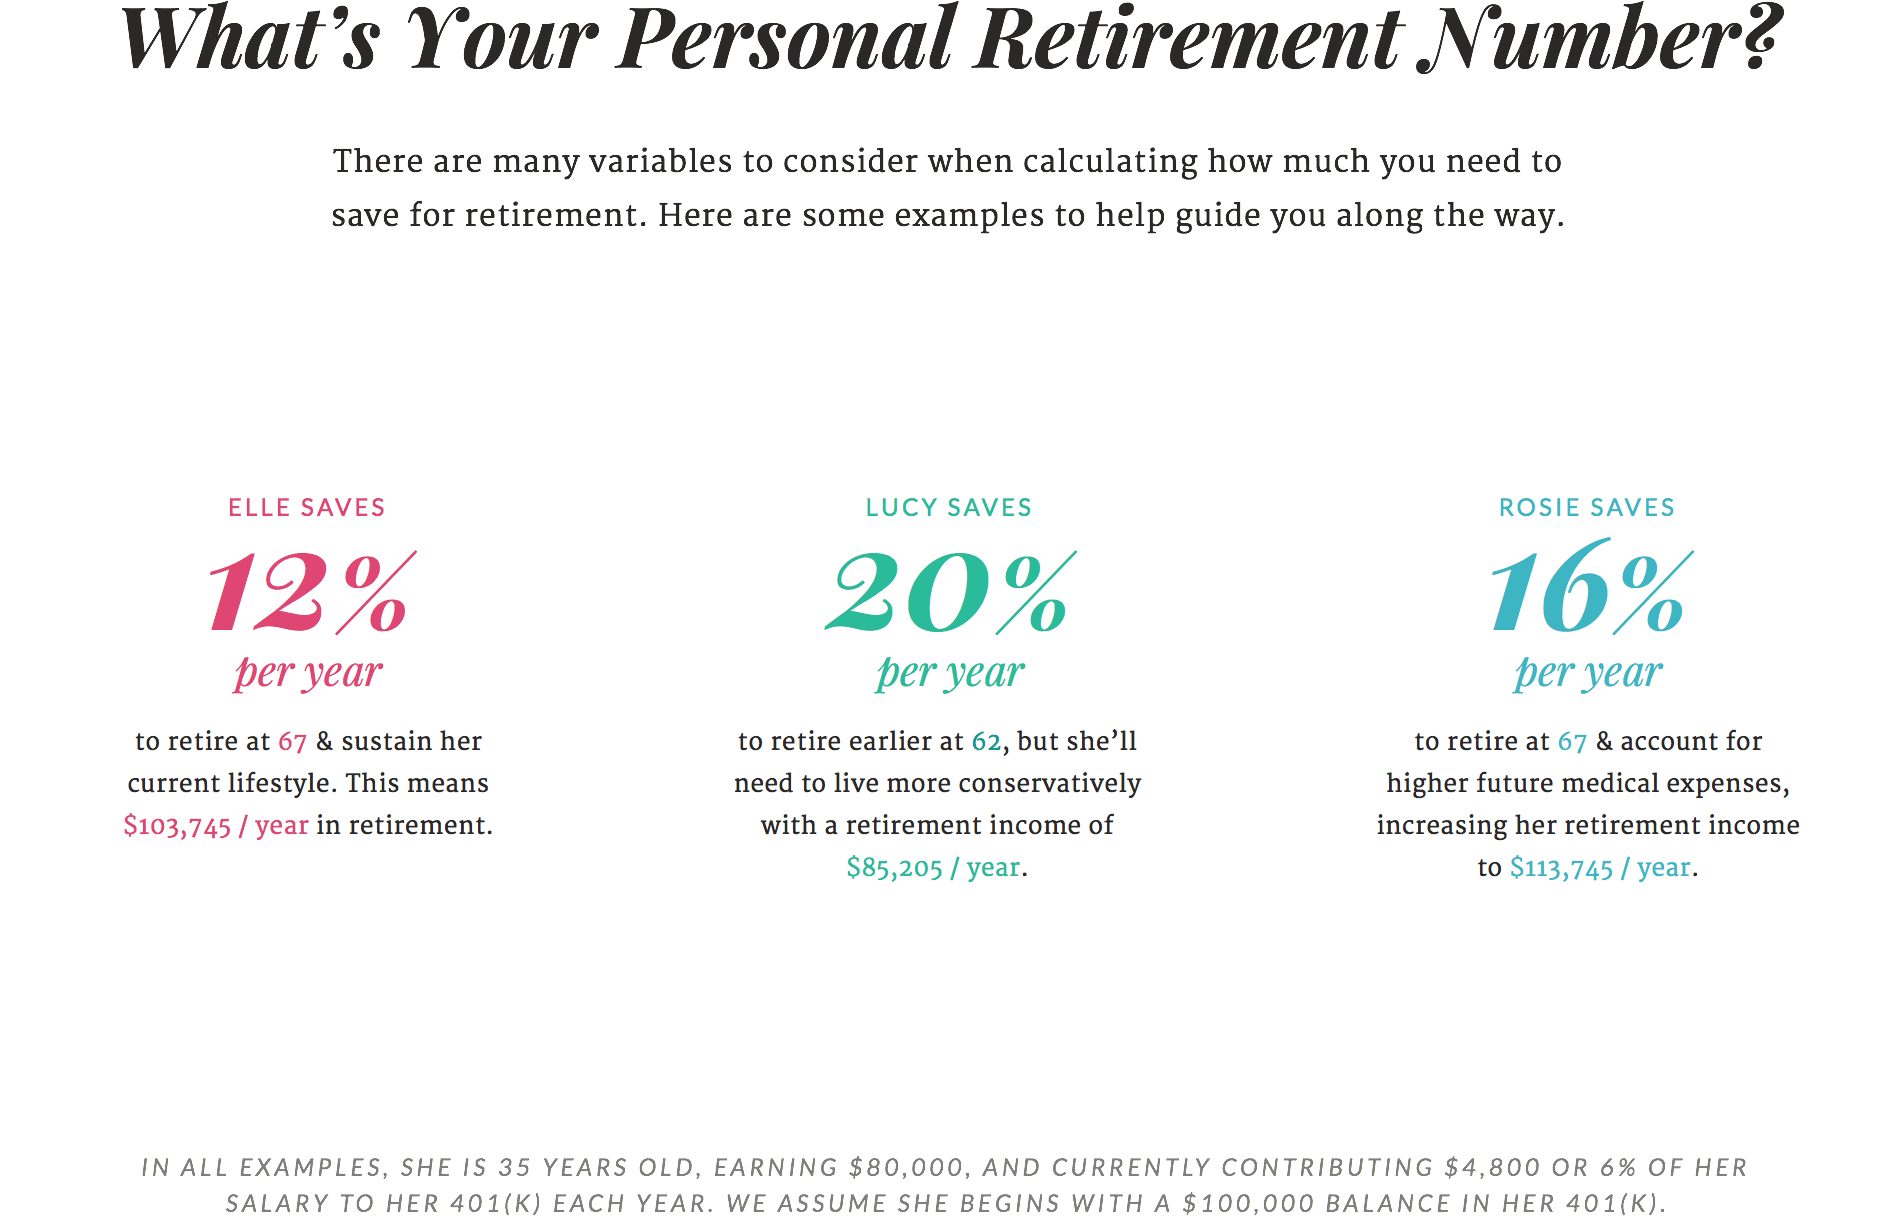 How Much Do You Need to Retire? (desktop)